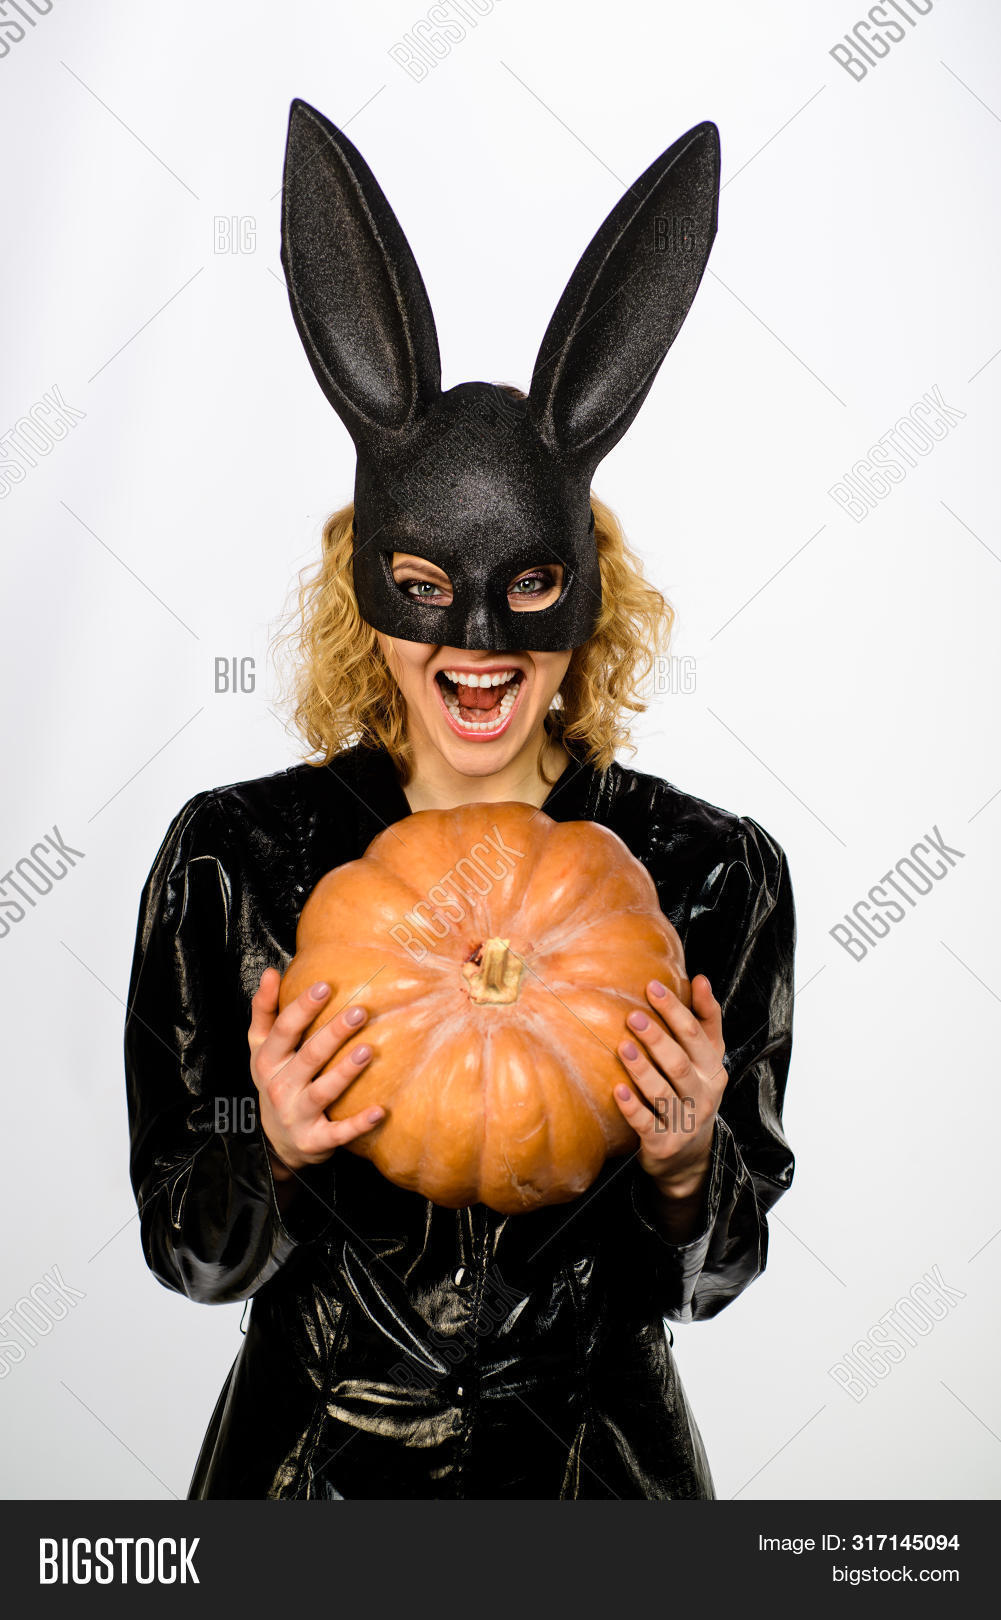 Happy woman in bunny mask with jack o lantern. Woman in bunny mask with pumpkin. Halloween costume. 31 October. Adorable blonde girl in black halloween bunny costume. Sexy girl in Halloween party.